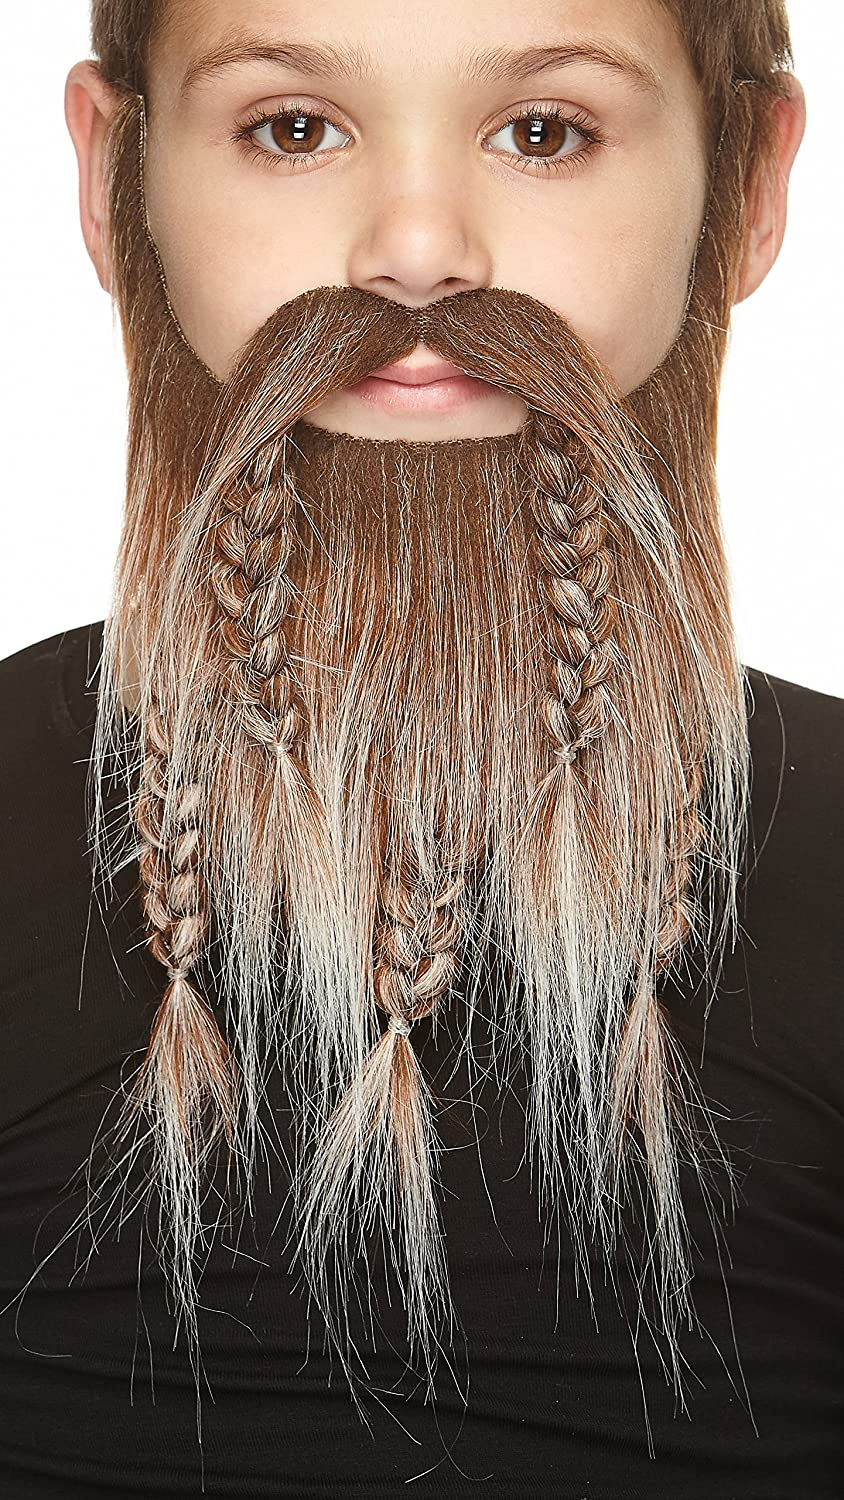 Mustaches Self Adhesive, Novelty, Fake, Small Viking Dwarf Beard Brown with Gray Color